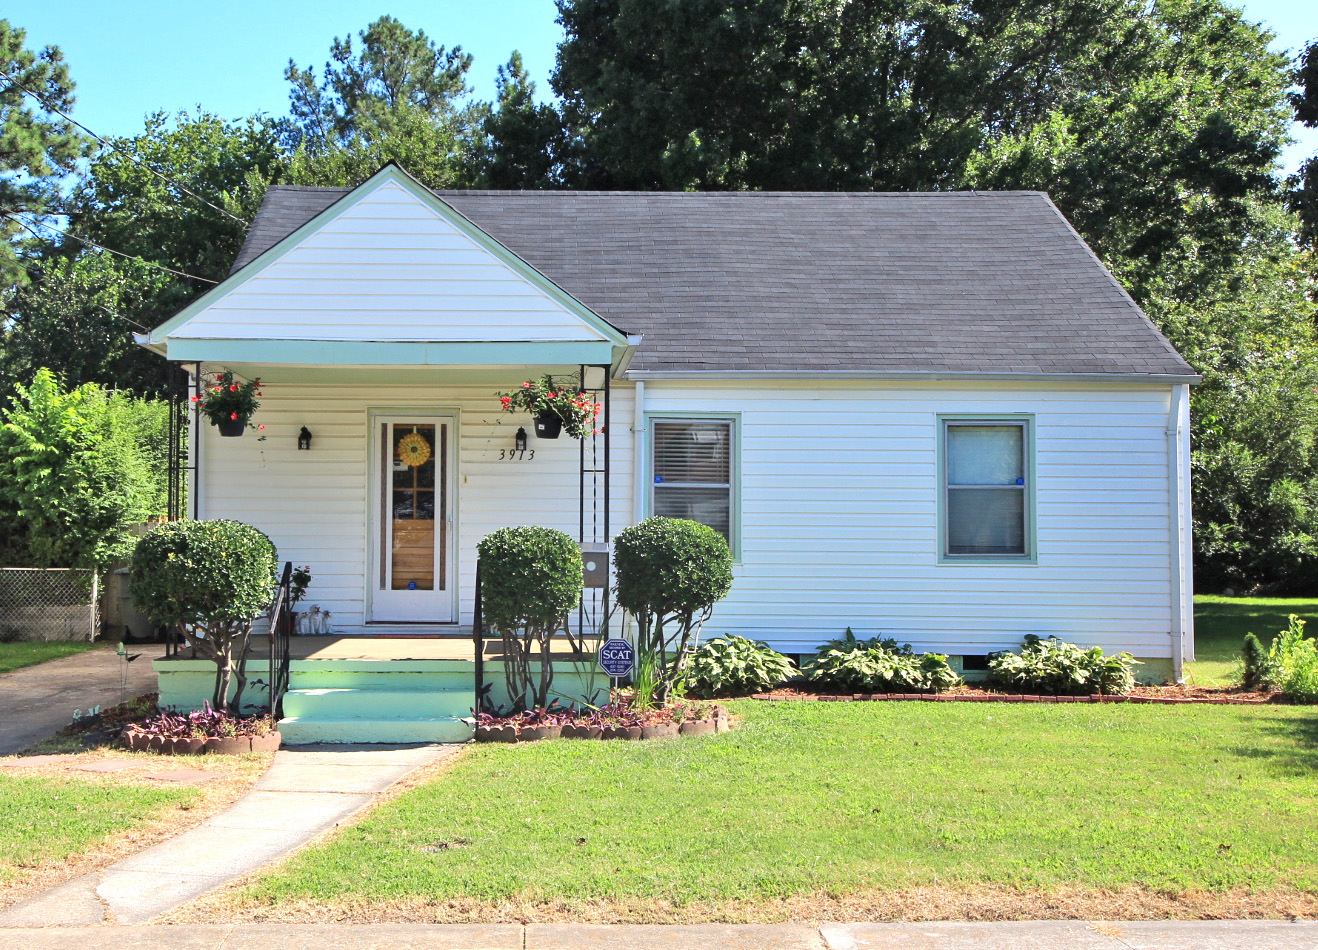 3913 Peterson Street: Sold!